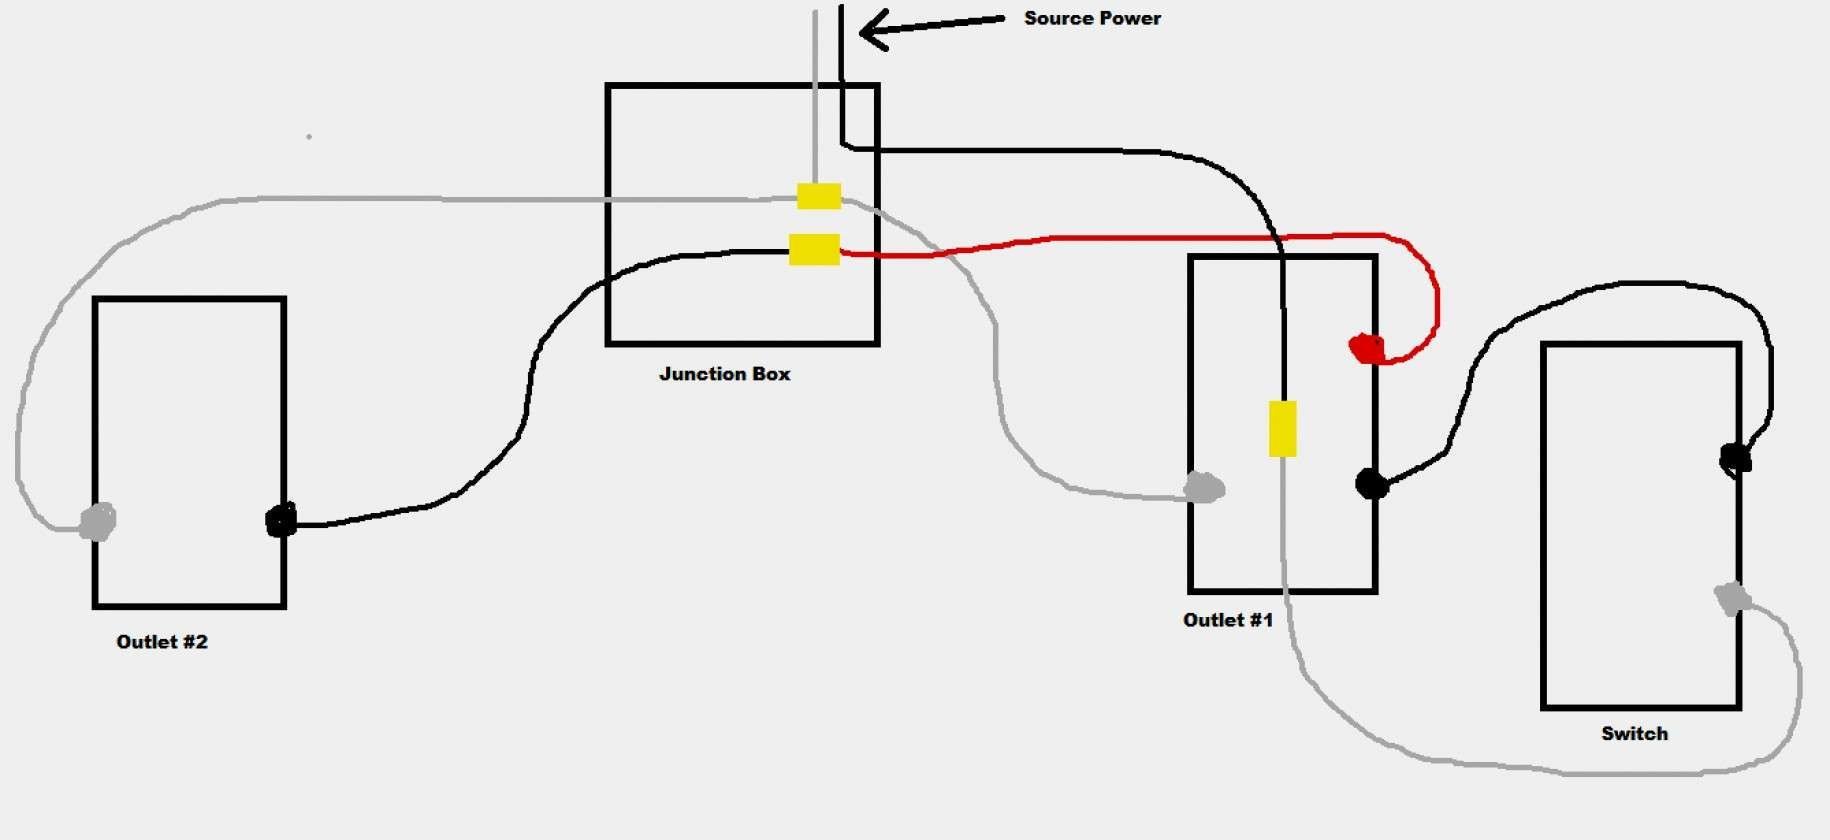 Wiring Diagram Outlets